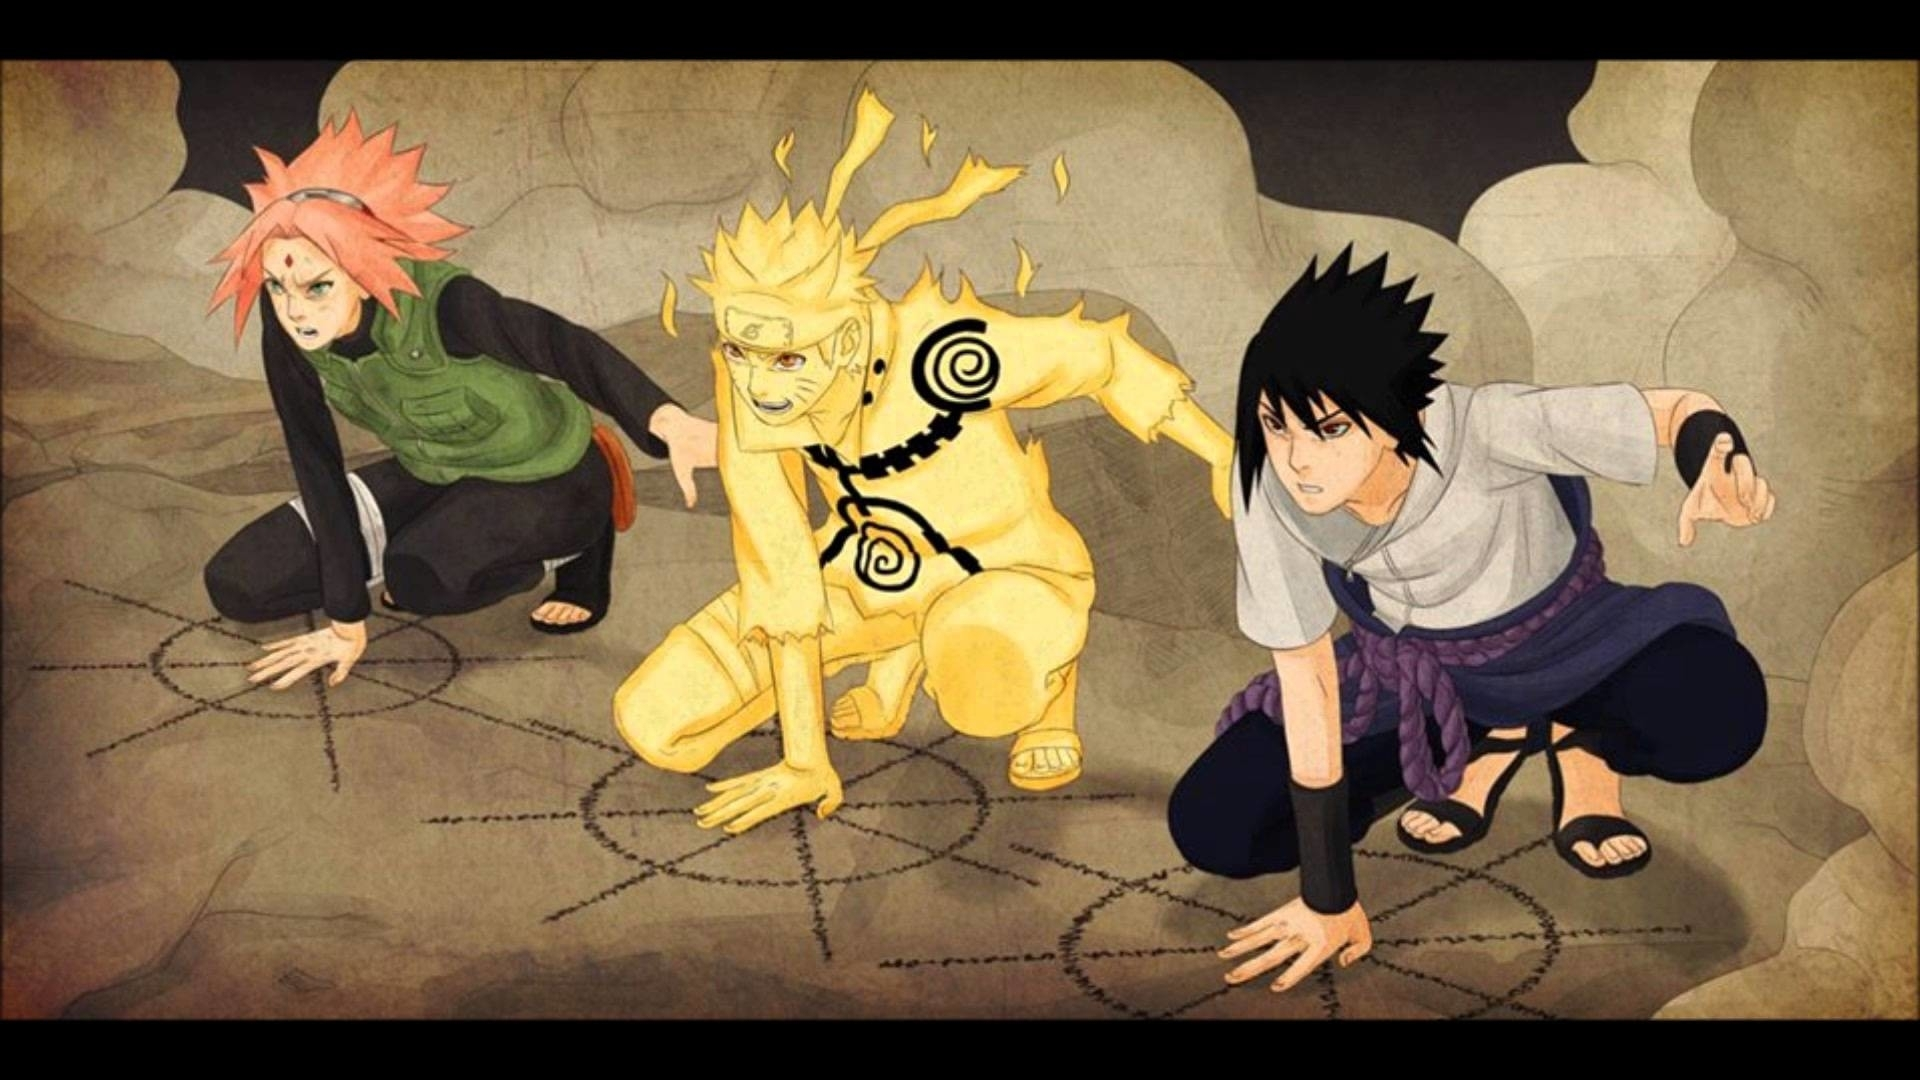 naruto team 7 wallpapers (62+ images)